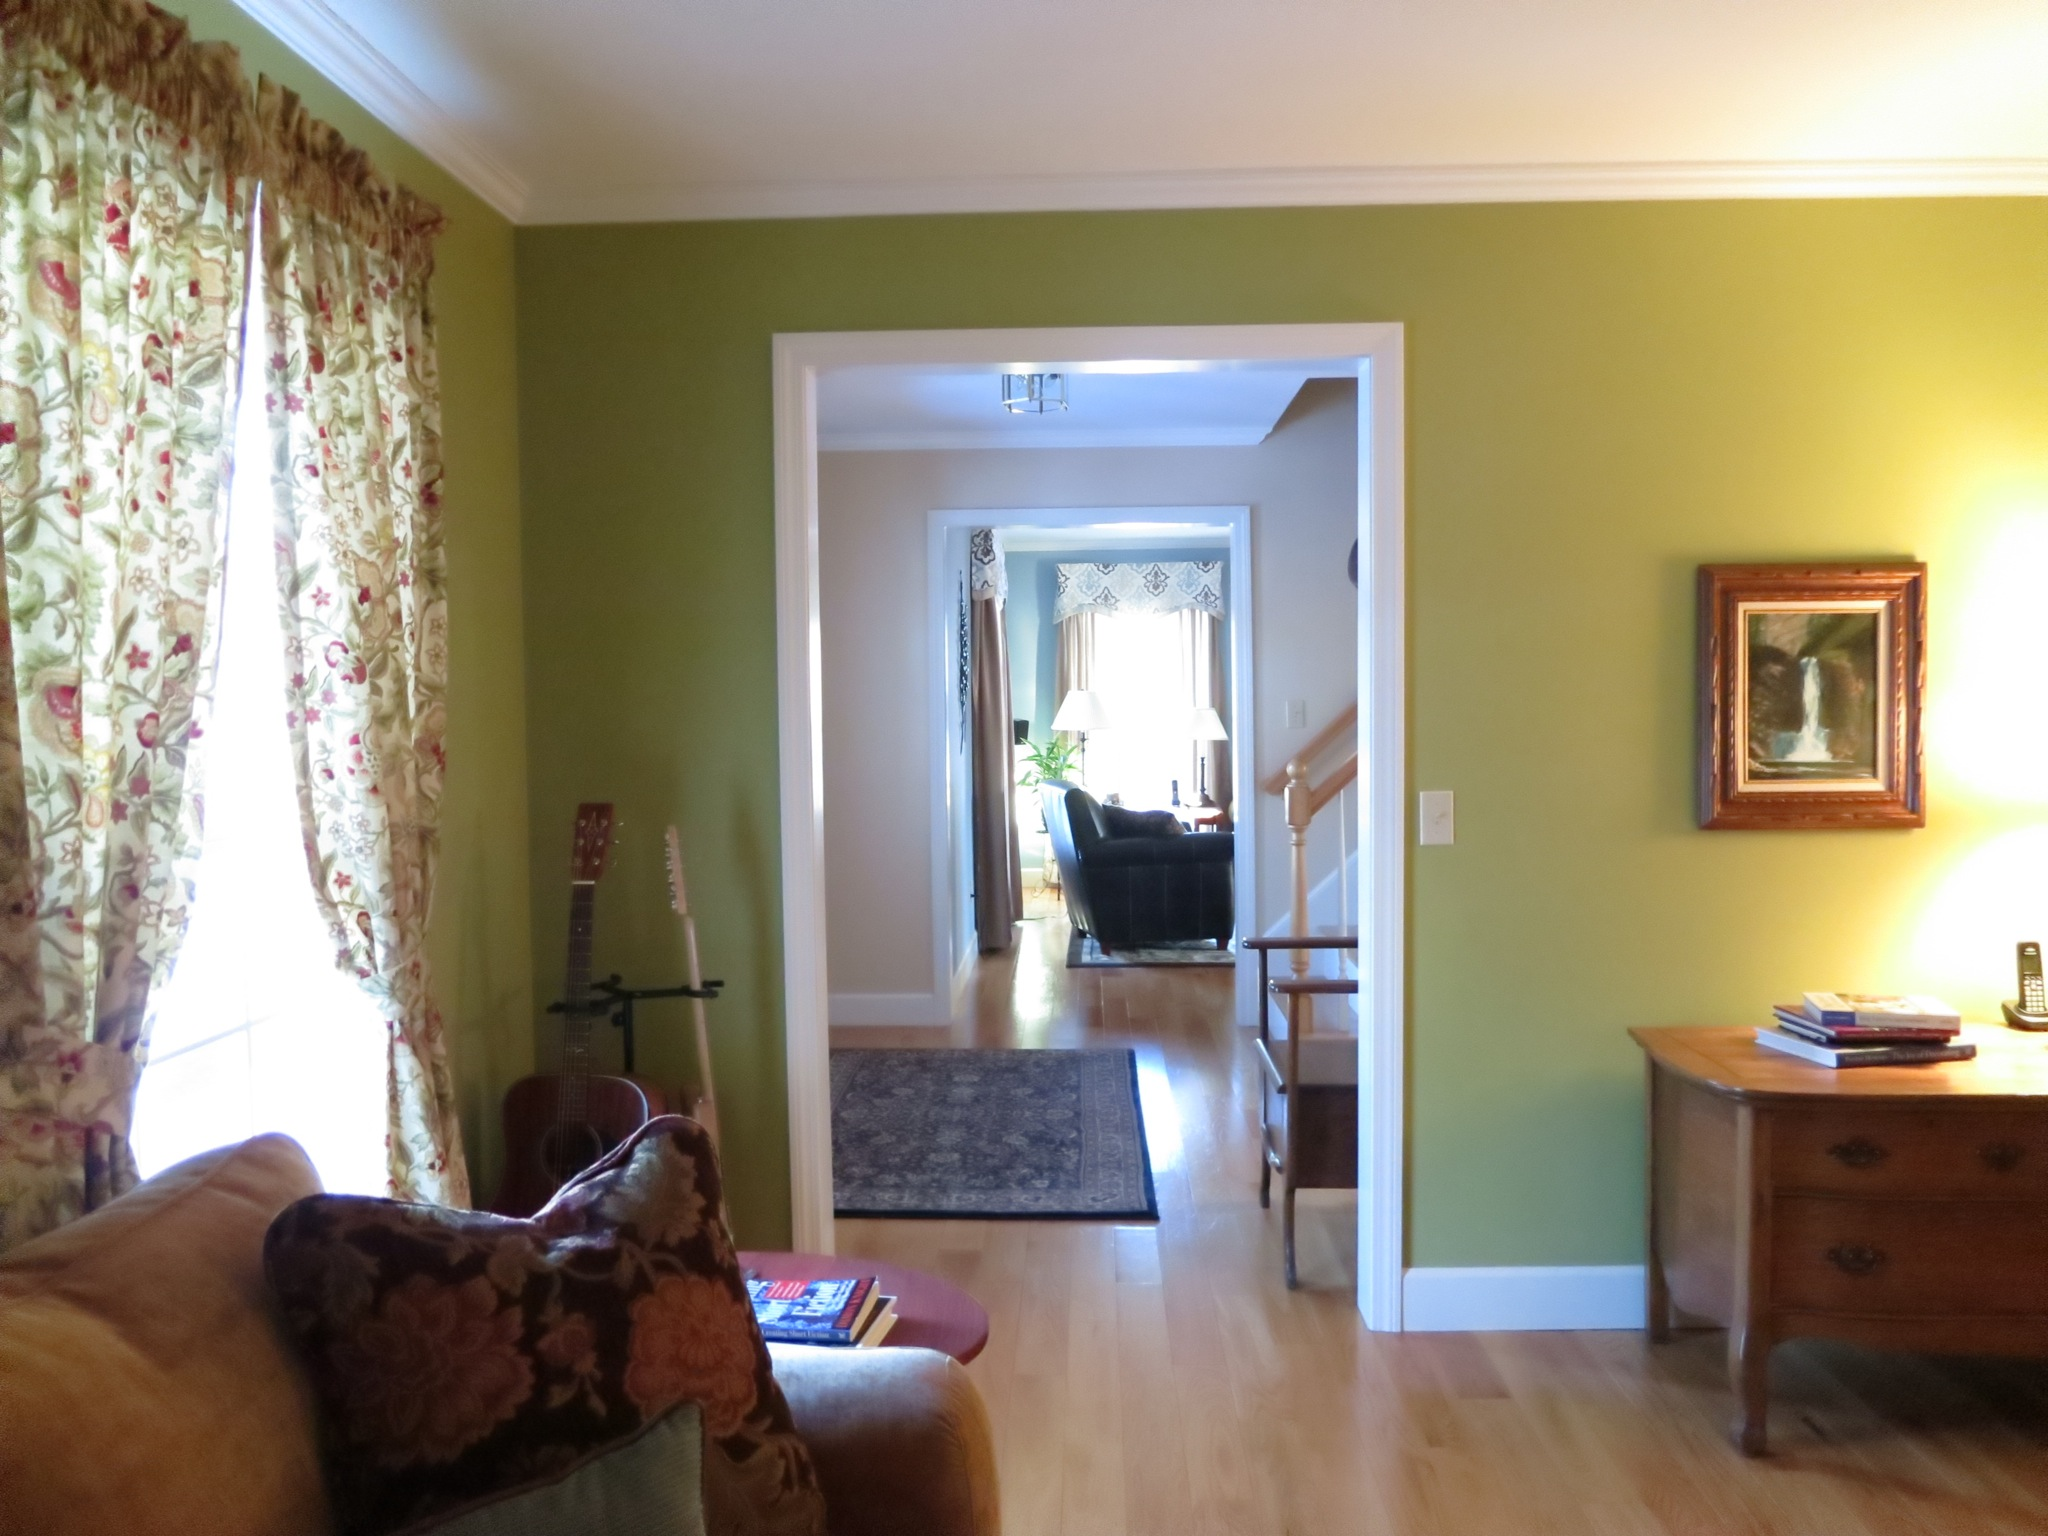 Thoughtful sight-lines abound: this one provides a view-through from the living room to the family room.